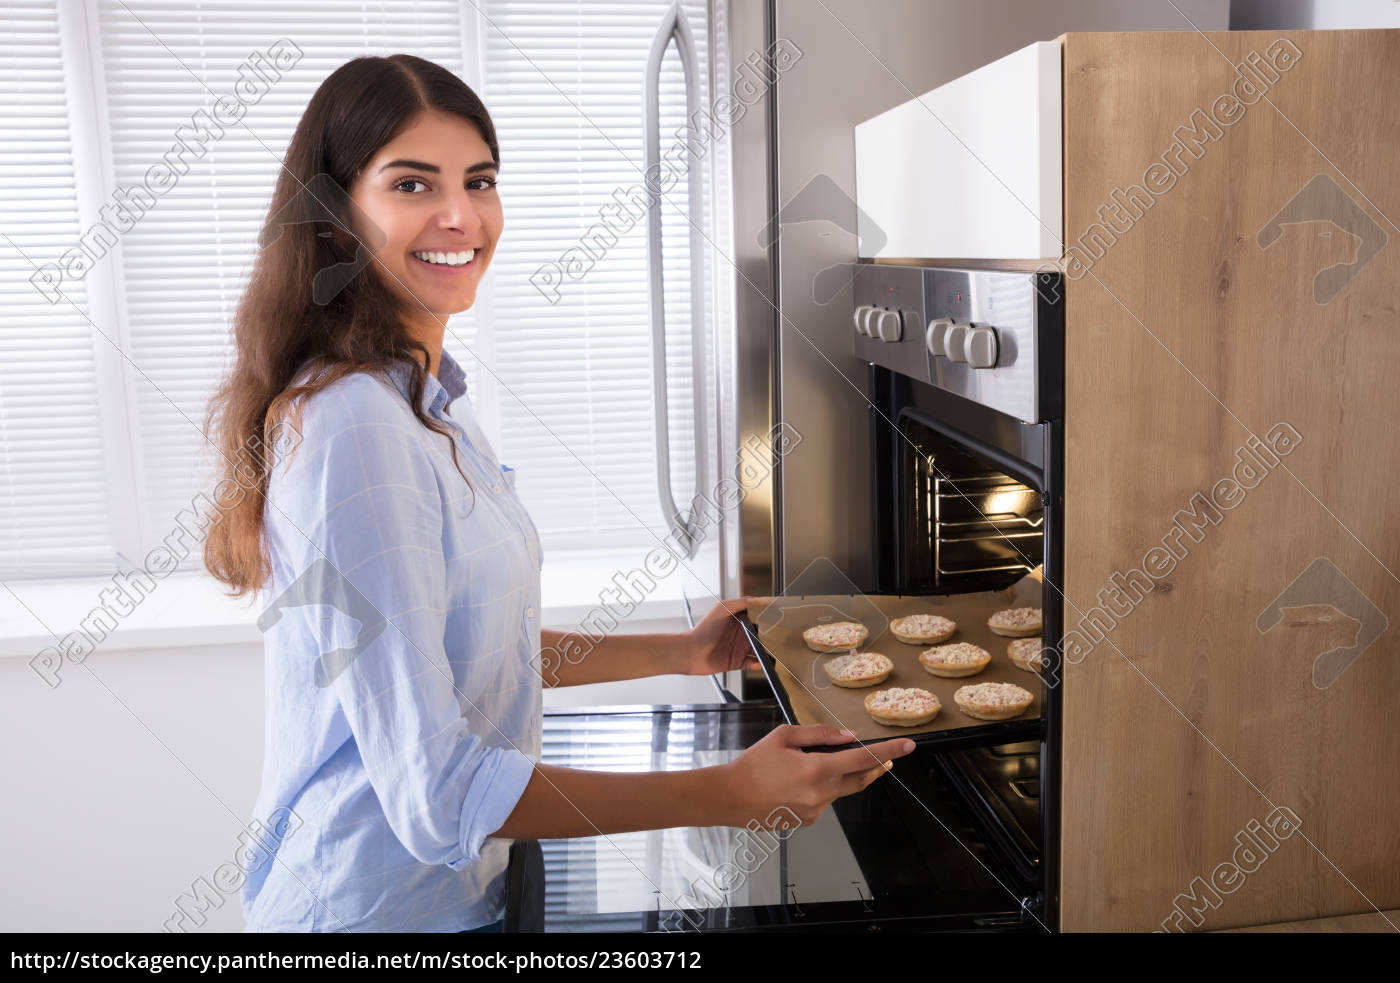 woman, baking, cookies, in, microwave, oven - 23603712